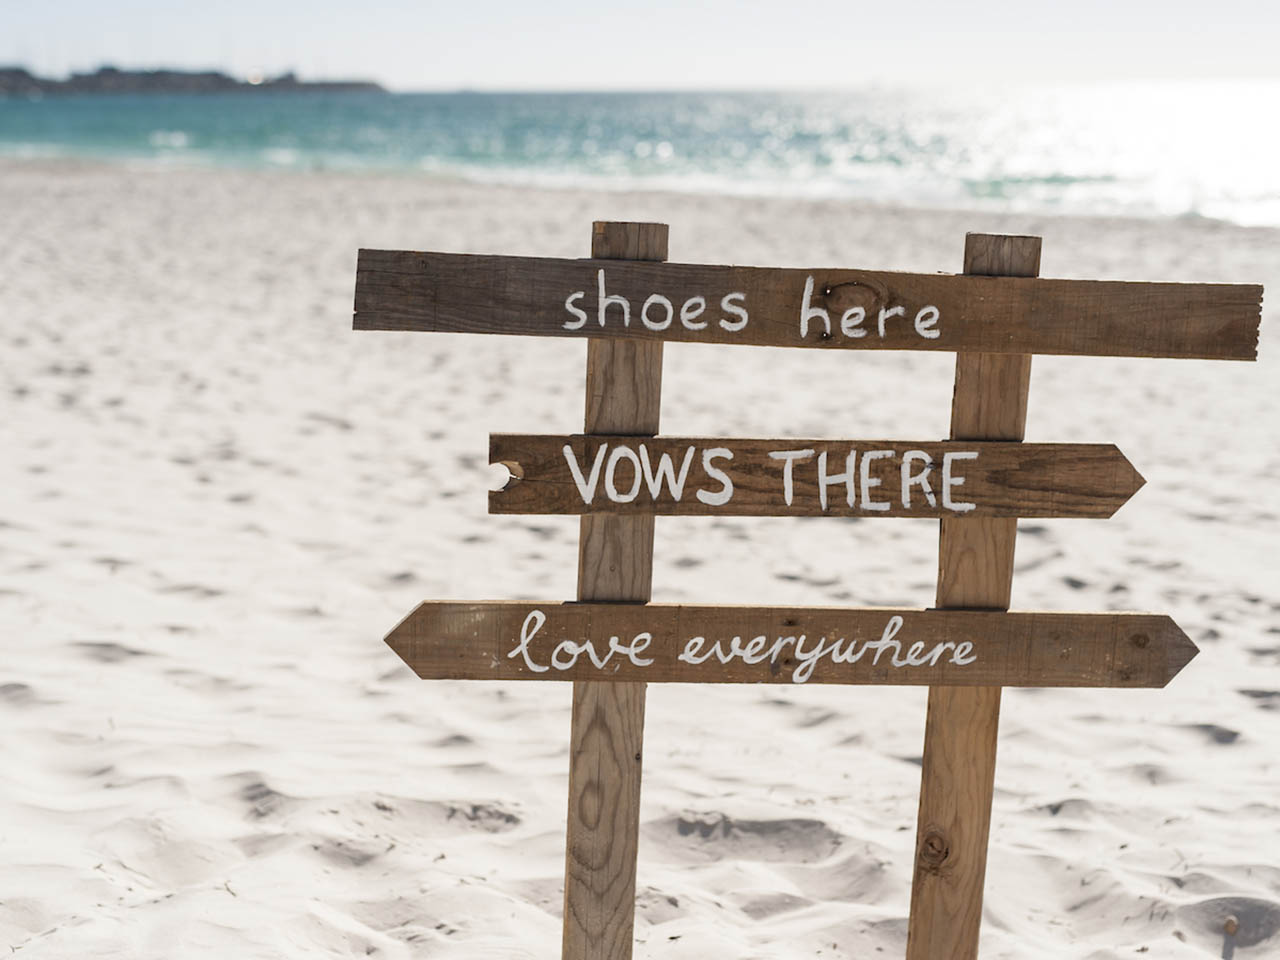 A Sign That Says Shoes Here, Vows There, Love Everywhere.